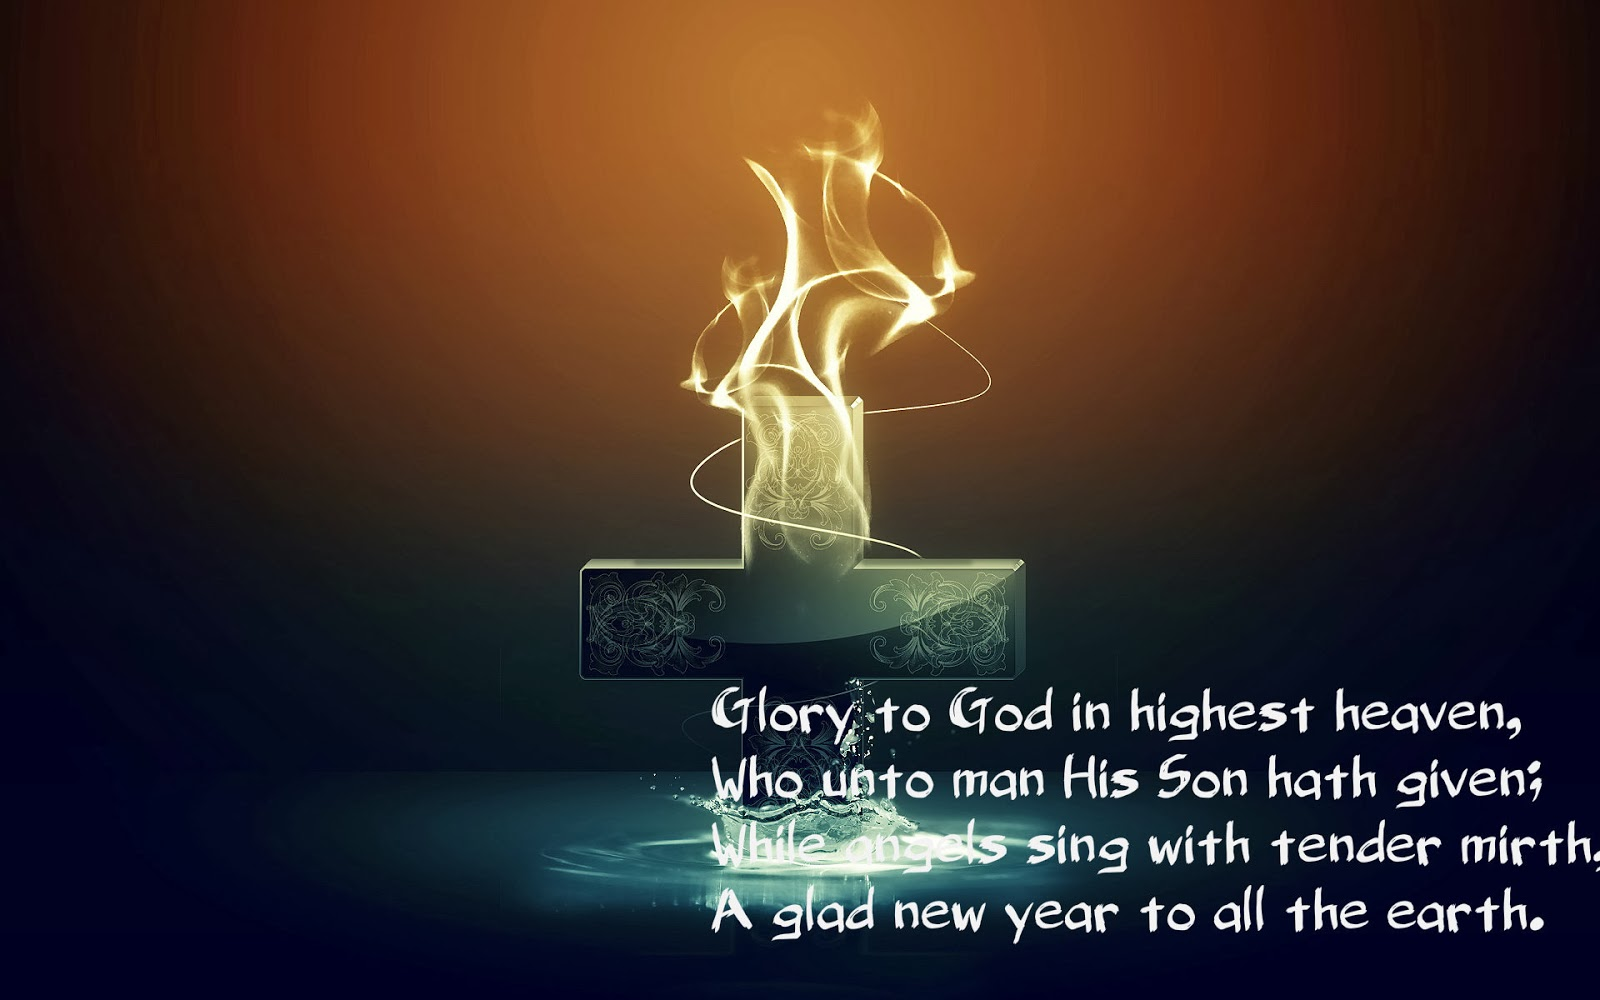 Christian Happy New Year Clip Art 2014 New Year Hd Wallpapers